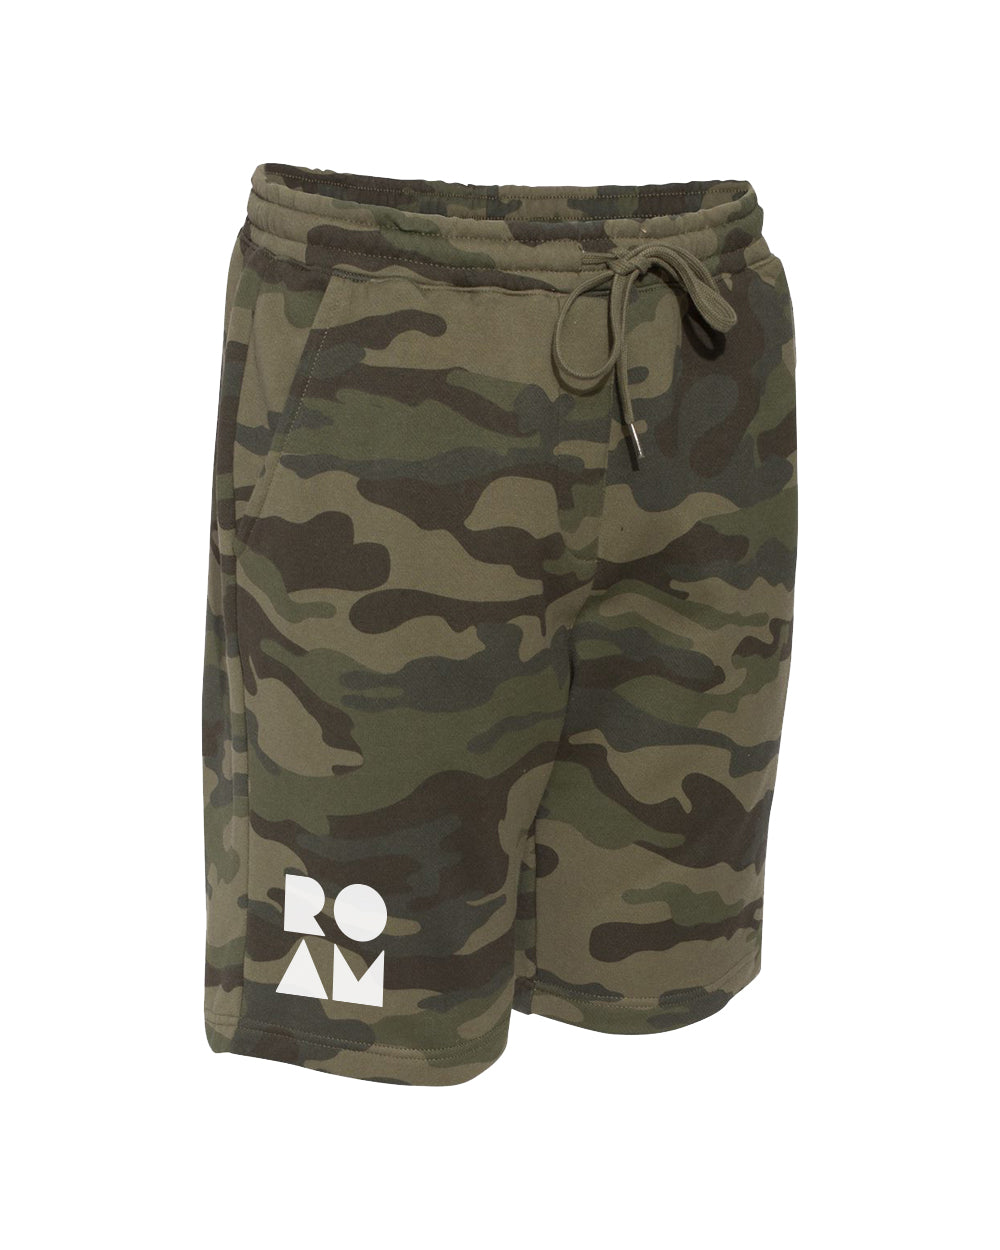 Roam Midweight Fleece Shorts - <br> Forest Camo